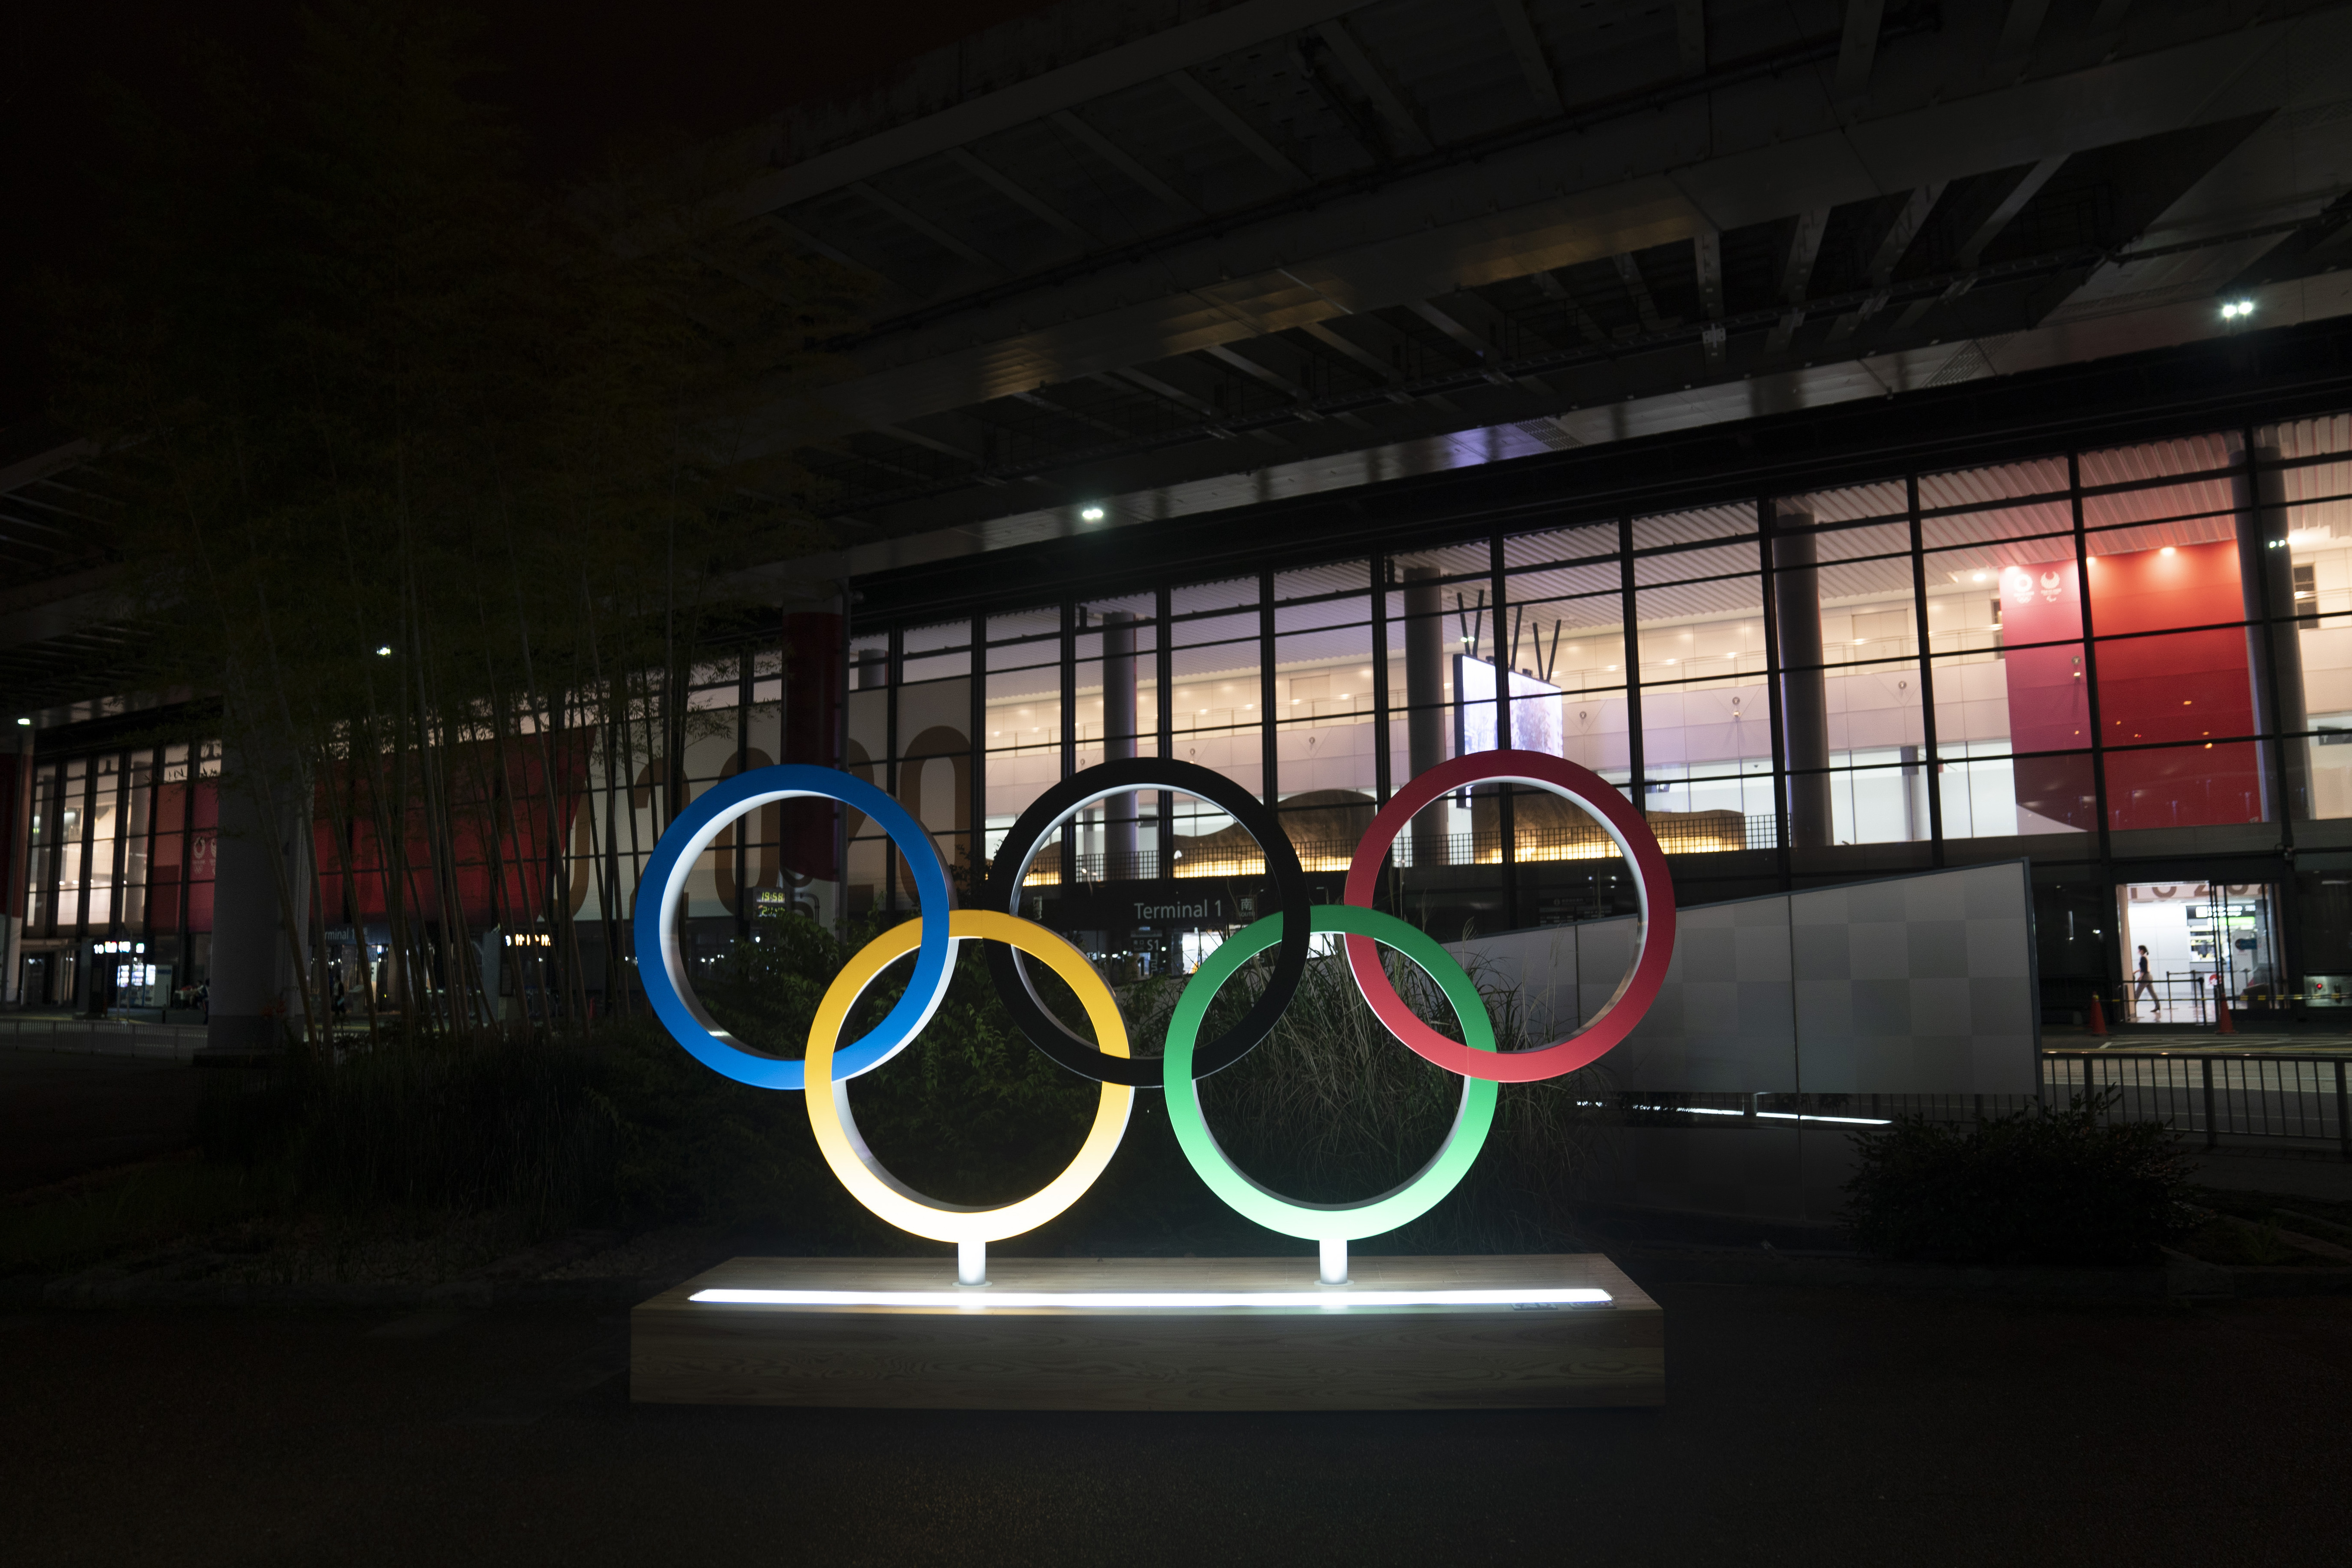 FILE - In this Saturday, July 10, 2021, file photo, the Olympic rings are illuminated outside the Narita International Airport prior to the 2020 Summe